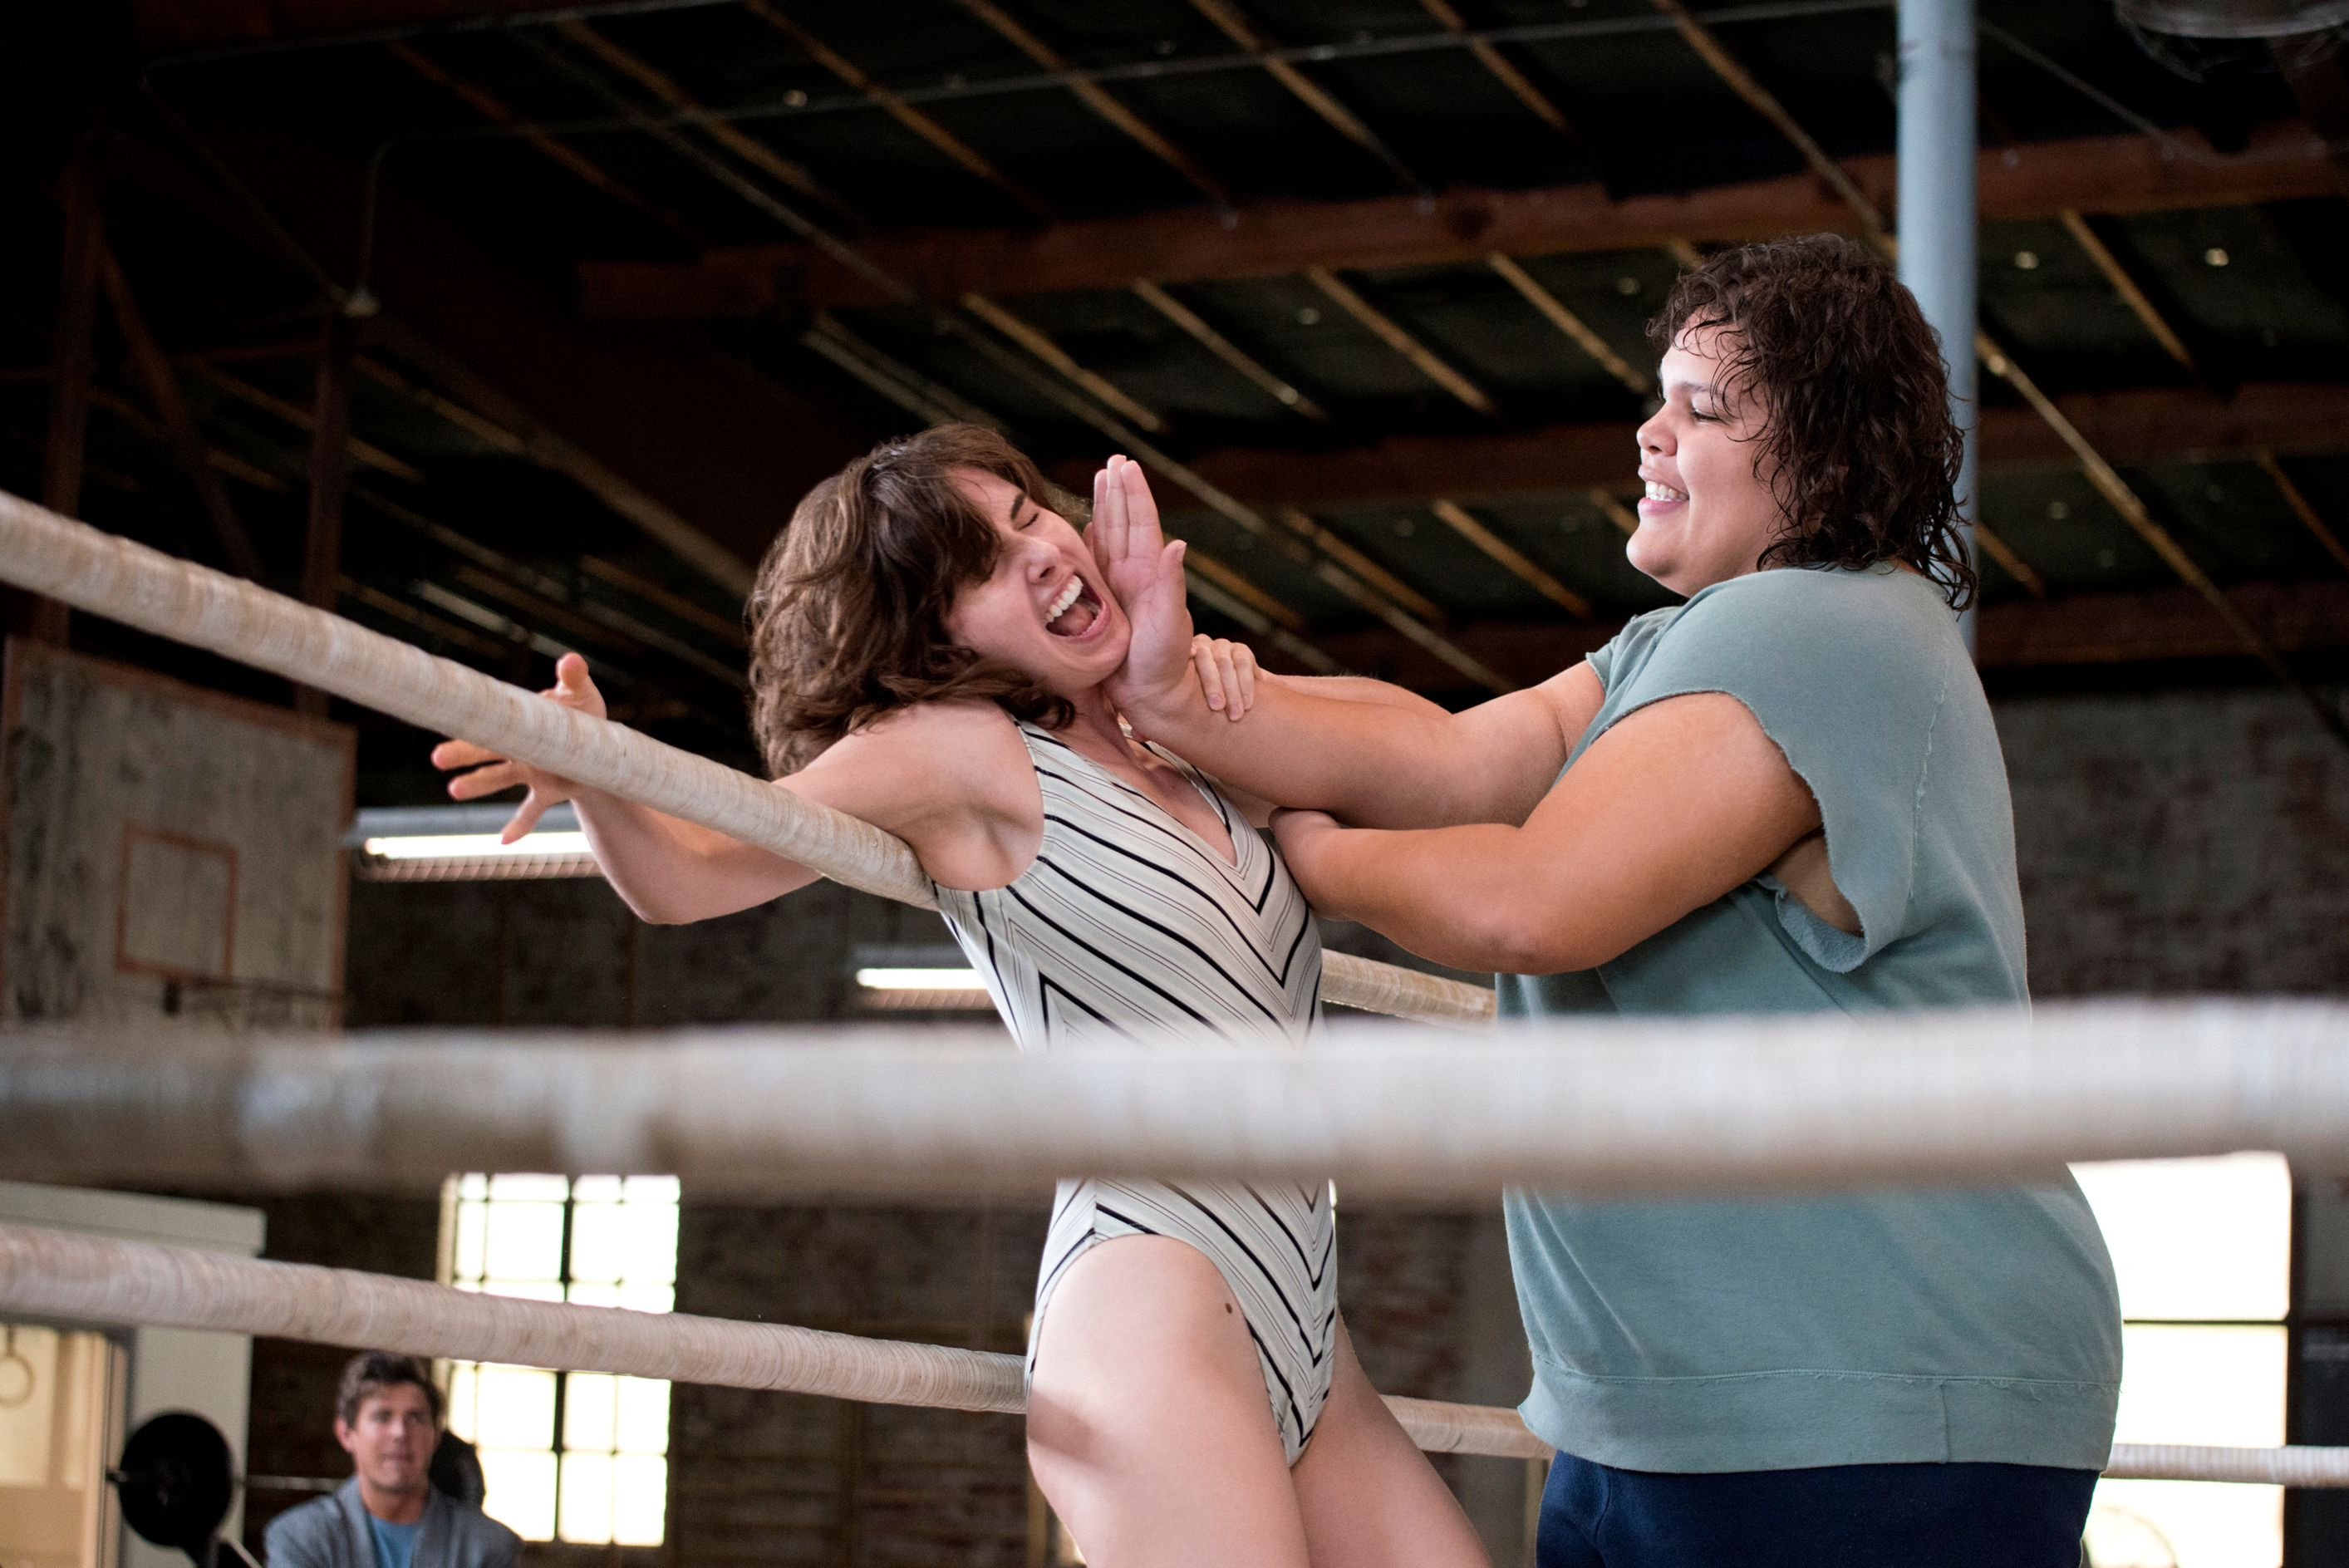 Alison Brie Leads Gorgeous Ladies of Wrestling in Netflix 'GLOW' Photos